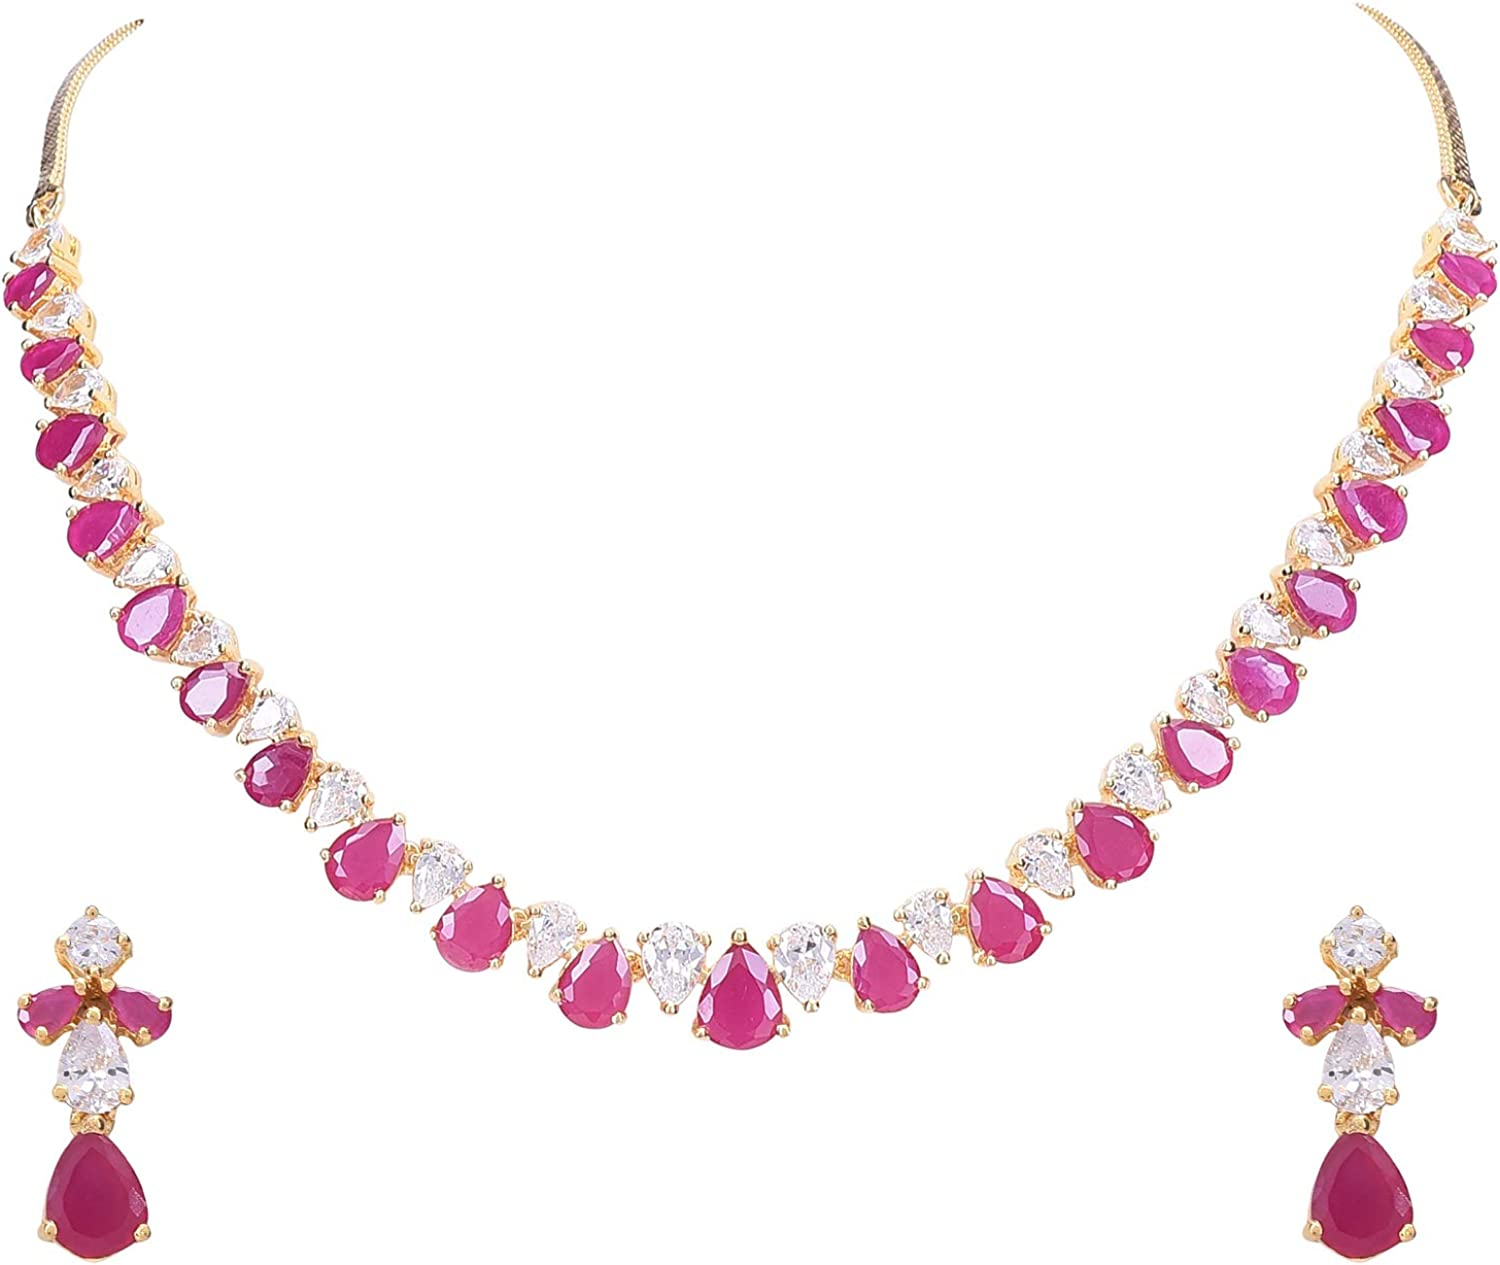 Ratnavali Jewels Women's Gold Tone Cubic Zirconia Single Line Necklace Earrings Set for Brides and Weddings RV3417